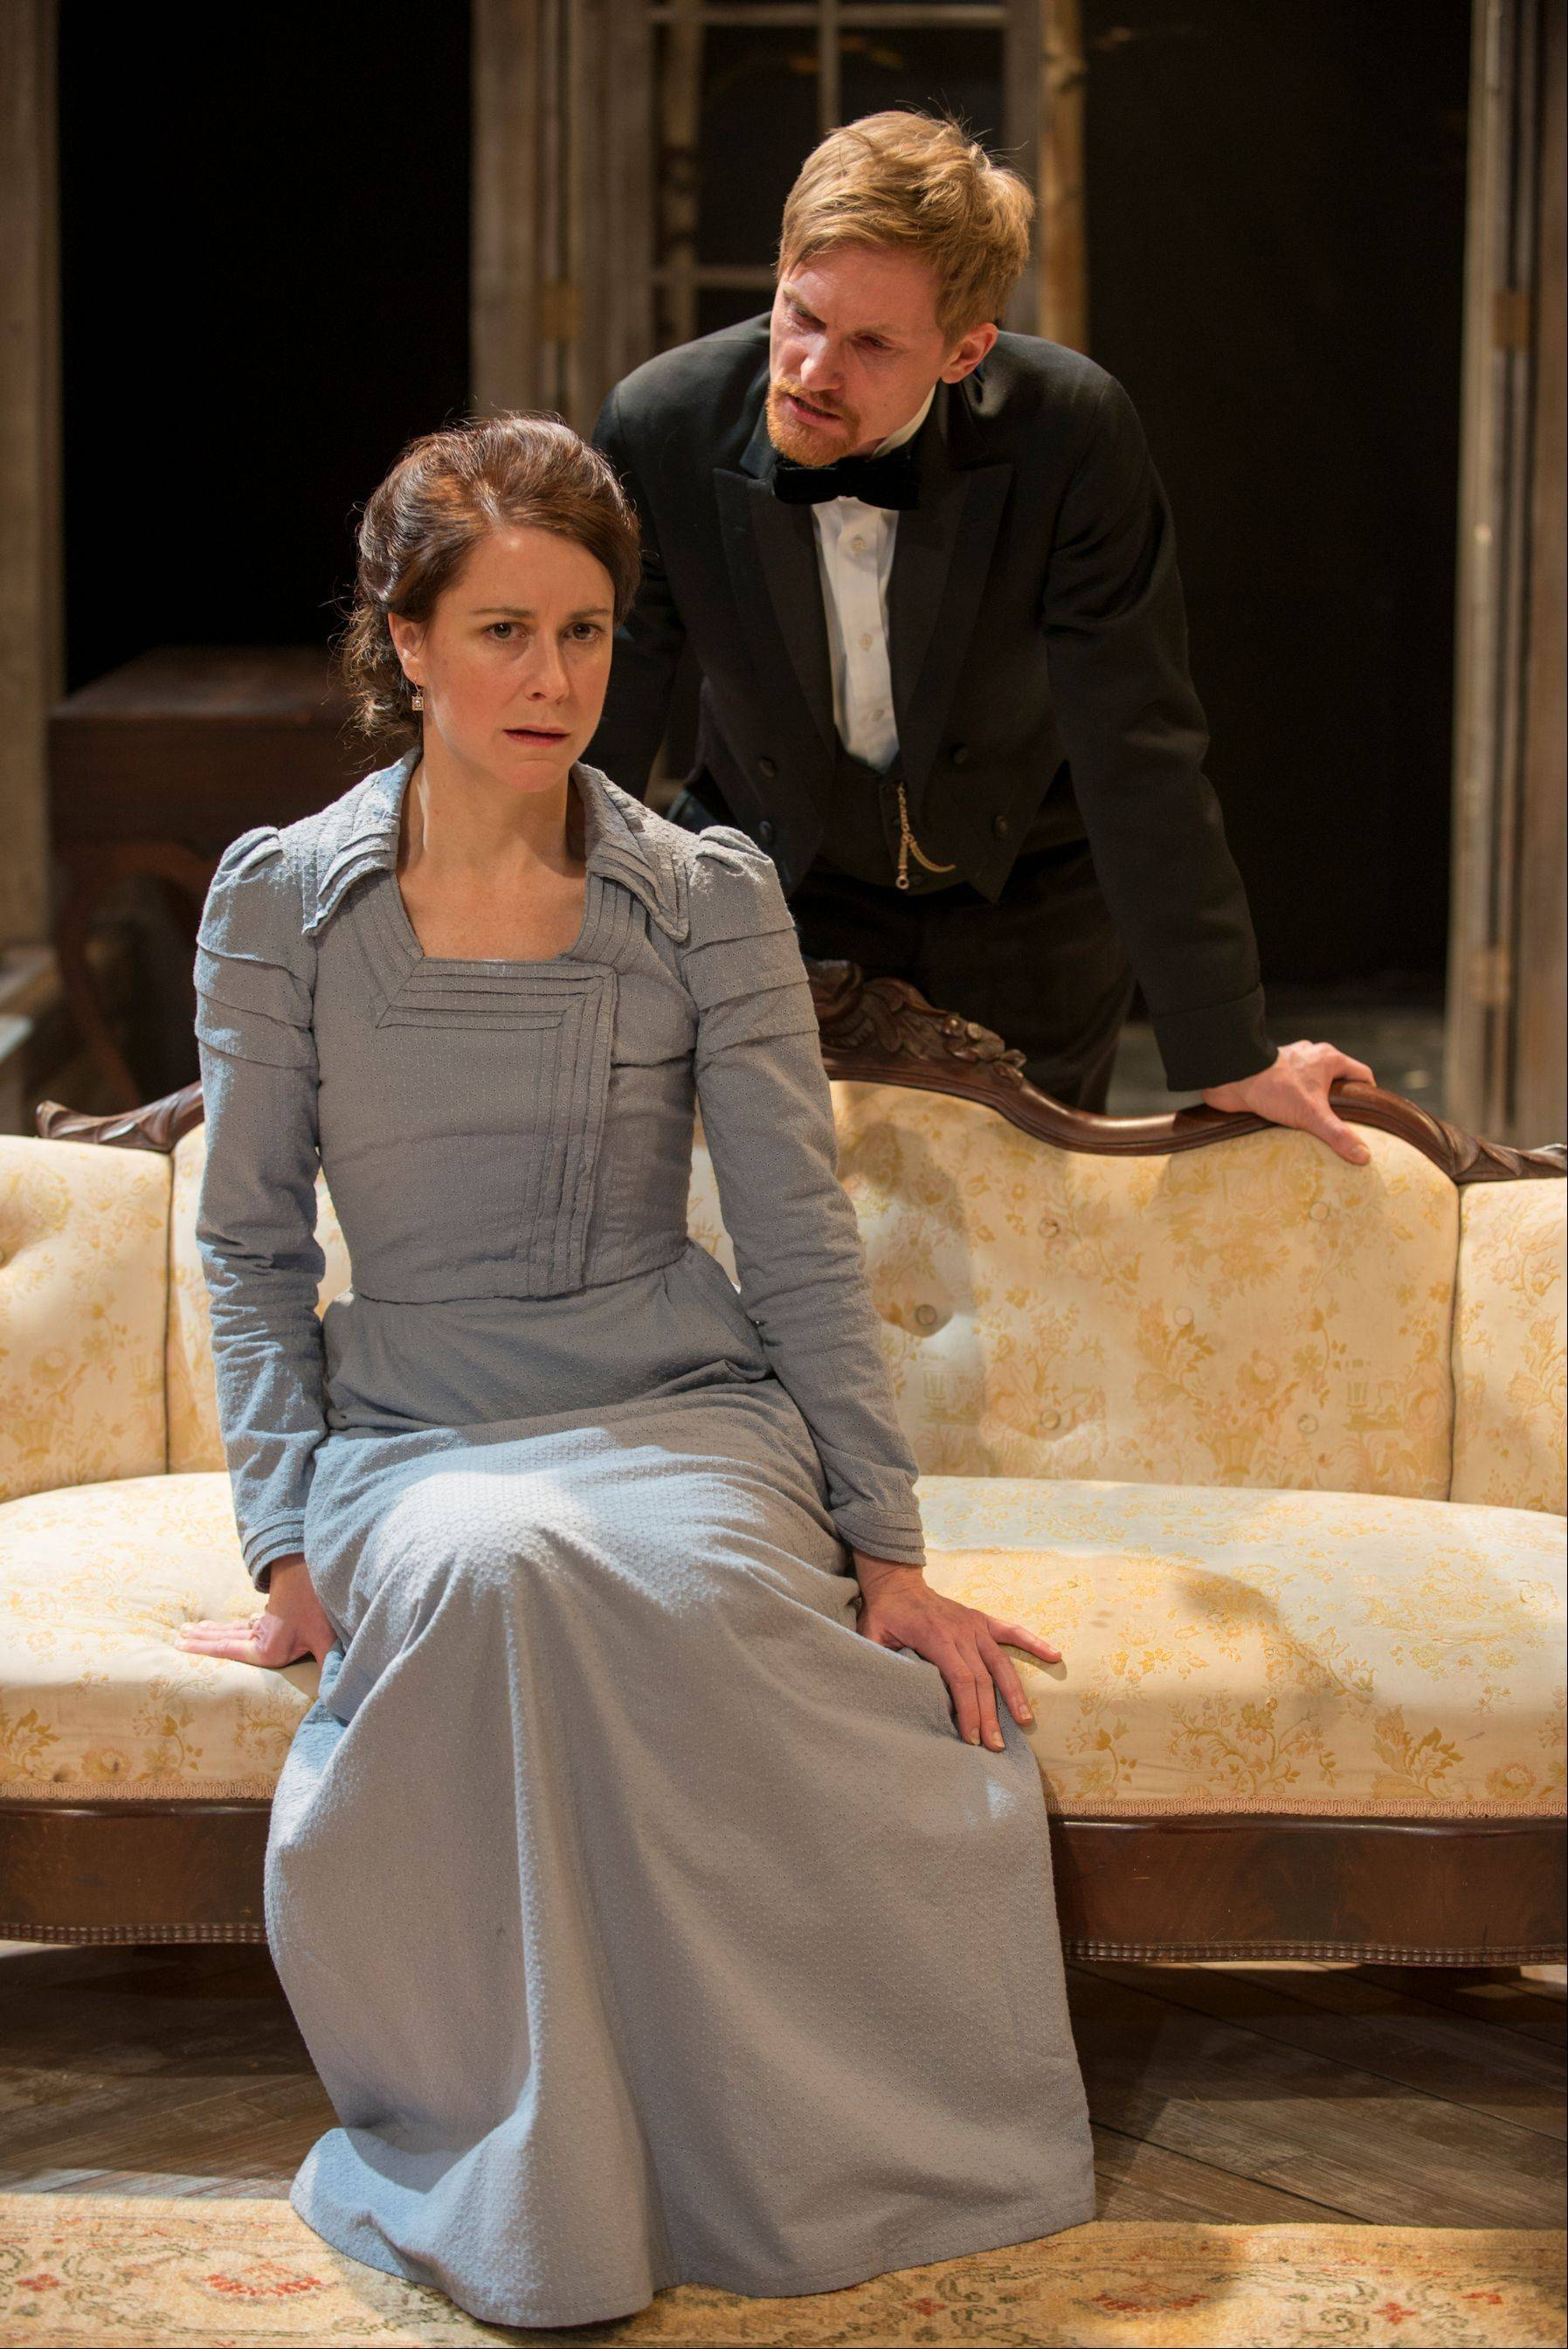 Kate Fry stars as the titular Hedda Gabler, a woman who unhappily trades her freedom for financial security, in the Writers Theatre revival of Henrik Ibsen's classic. Scott Parkinson plays Judge Brack, an old friend.